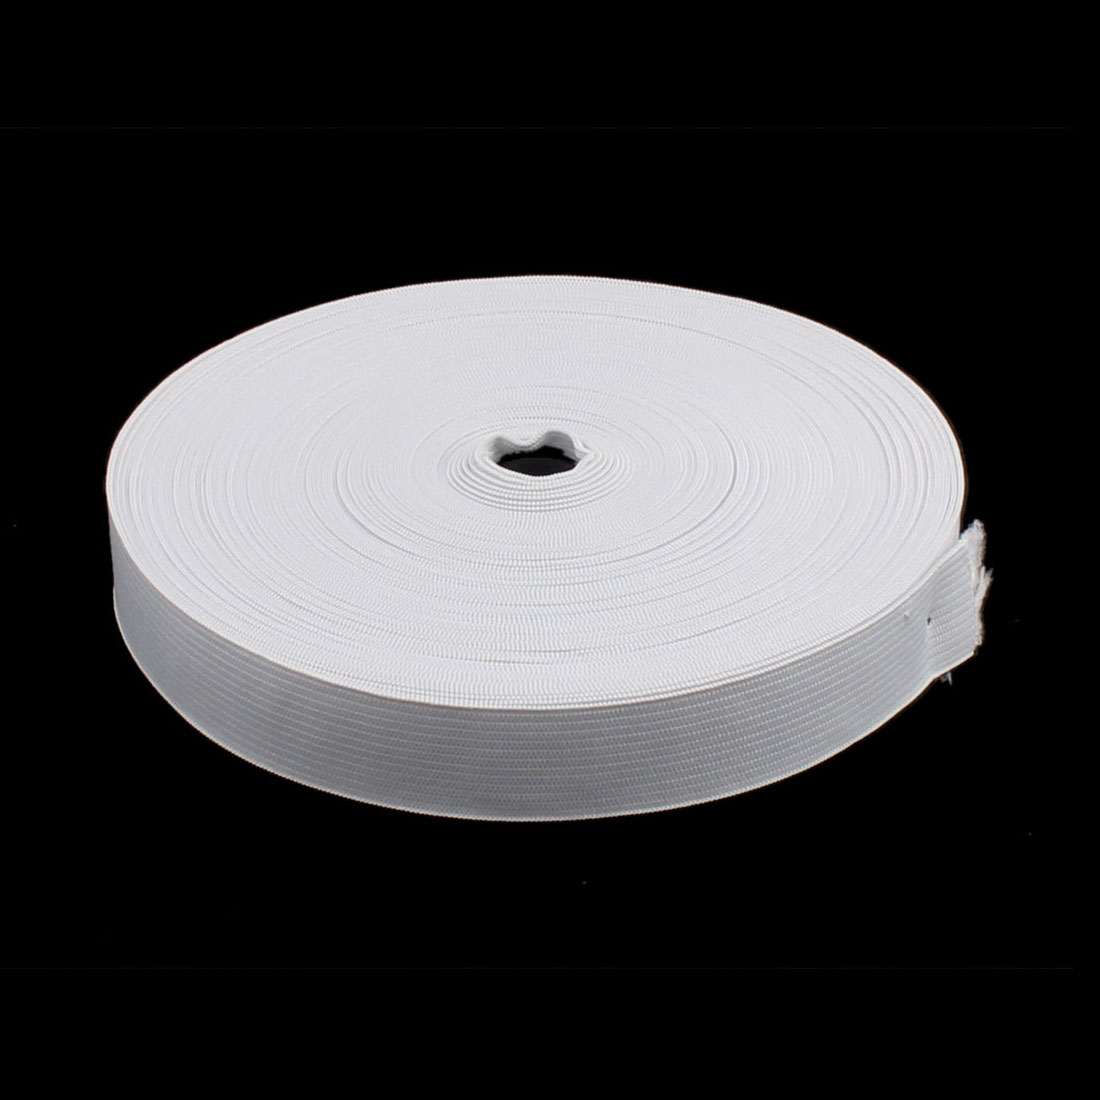 Clothes Trousers Pants Skirt Polyester Elastic Band String White 12M Length 2pcs - image 2 of 3